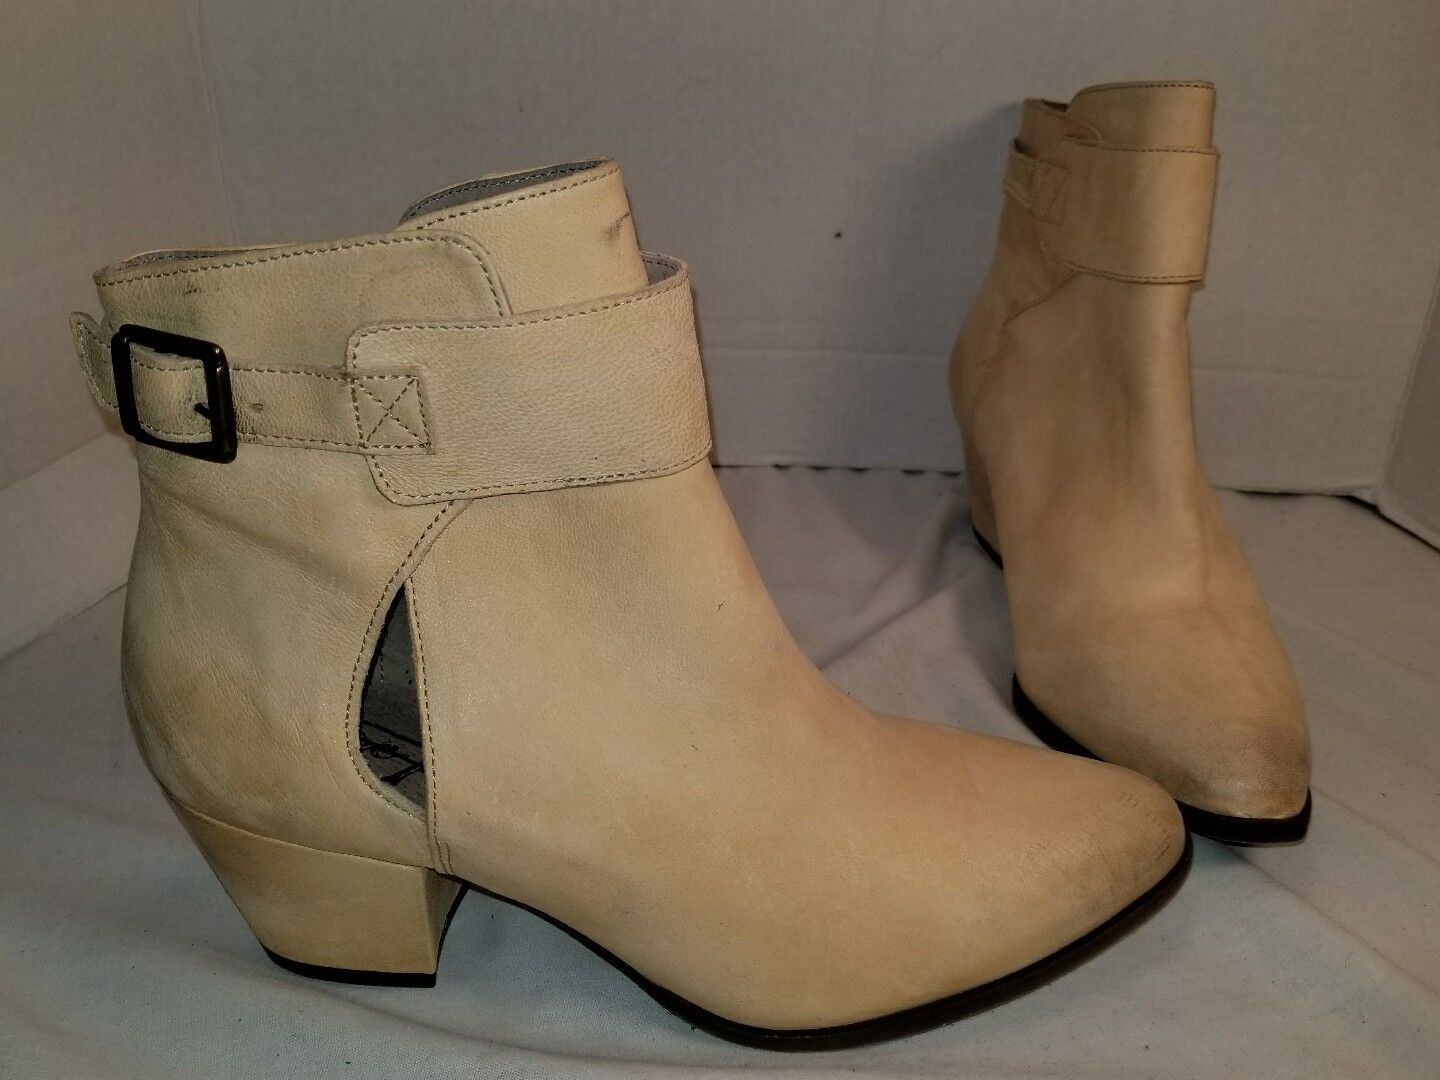 ANTHROPOLOGIE FREE PEOPLE 10 BELLEVILLE NATURAL LEATHER ANKLE Stiefel US 10 PEOPLE EUR 40 e7e1b1